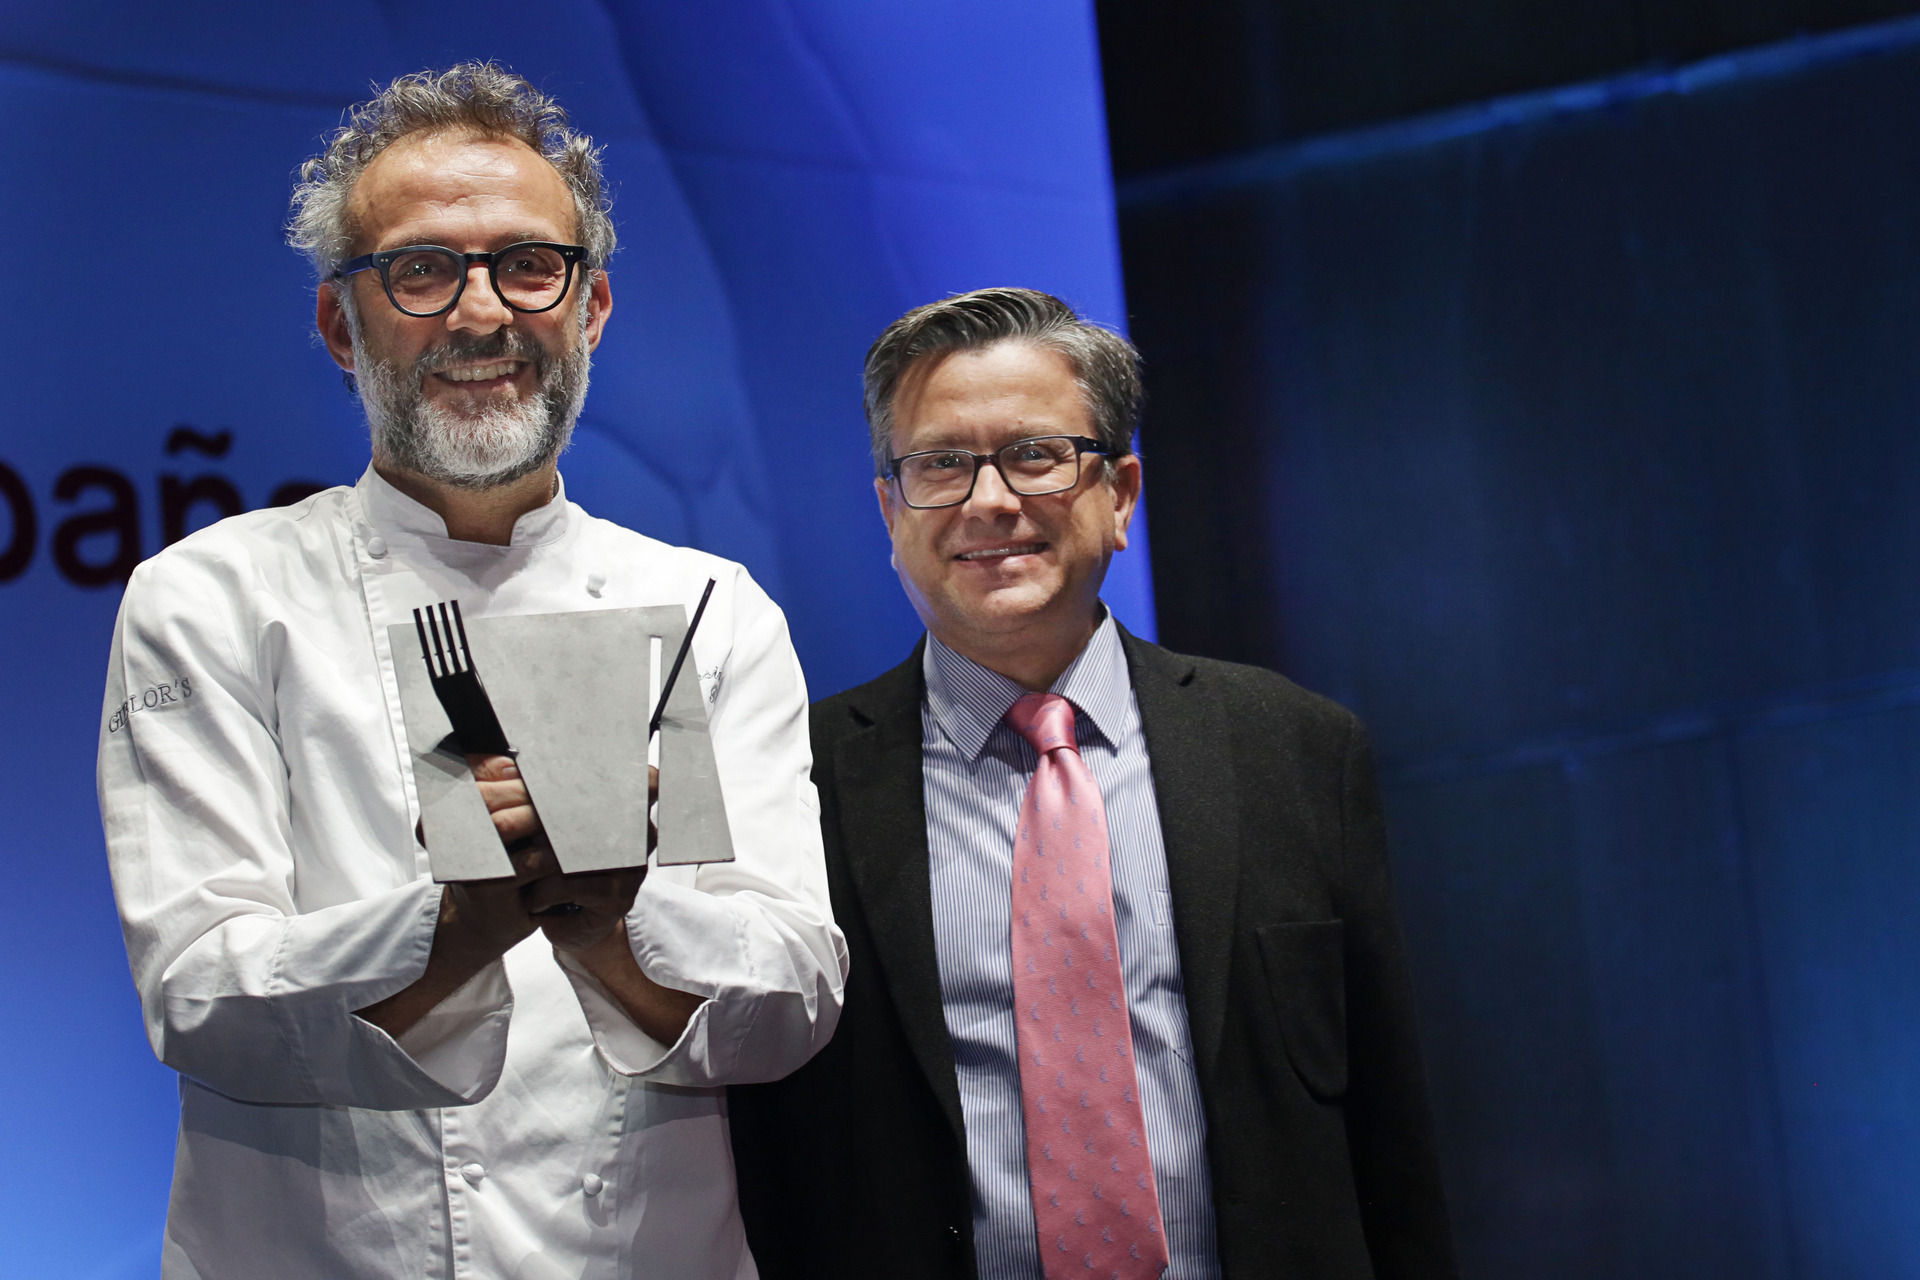 Massimo Bottura with the Best Chef award © Fiat Chrysler Automobiles N.V.